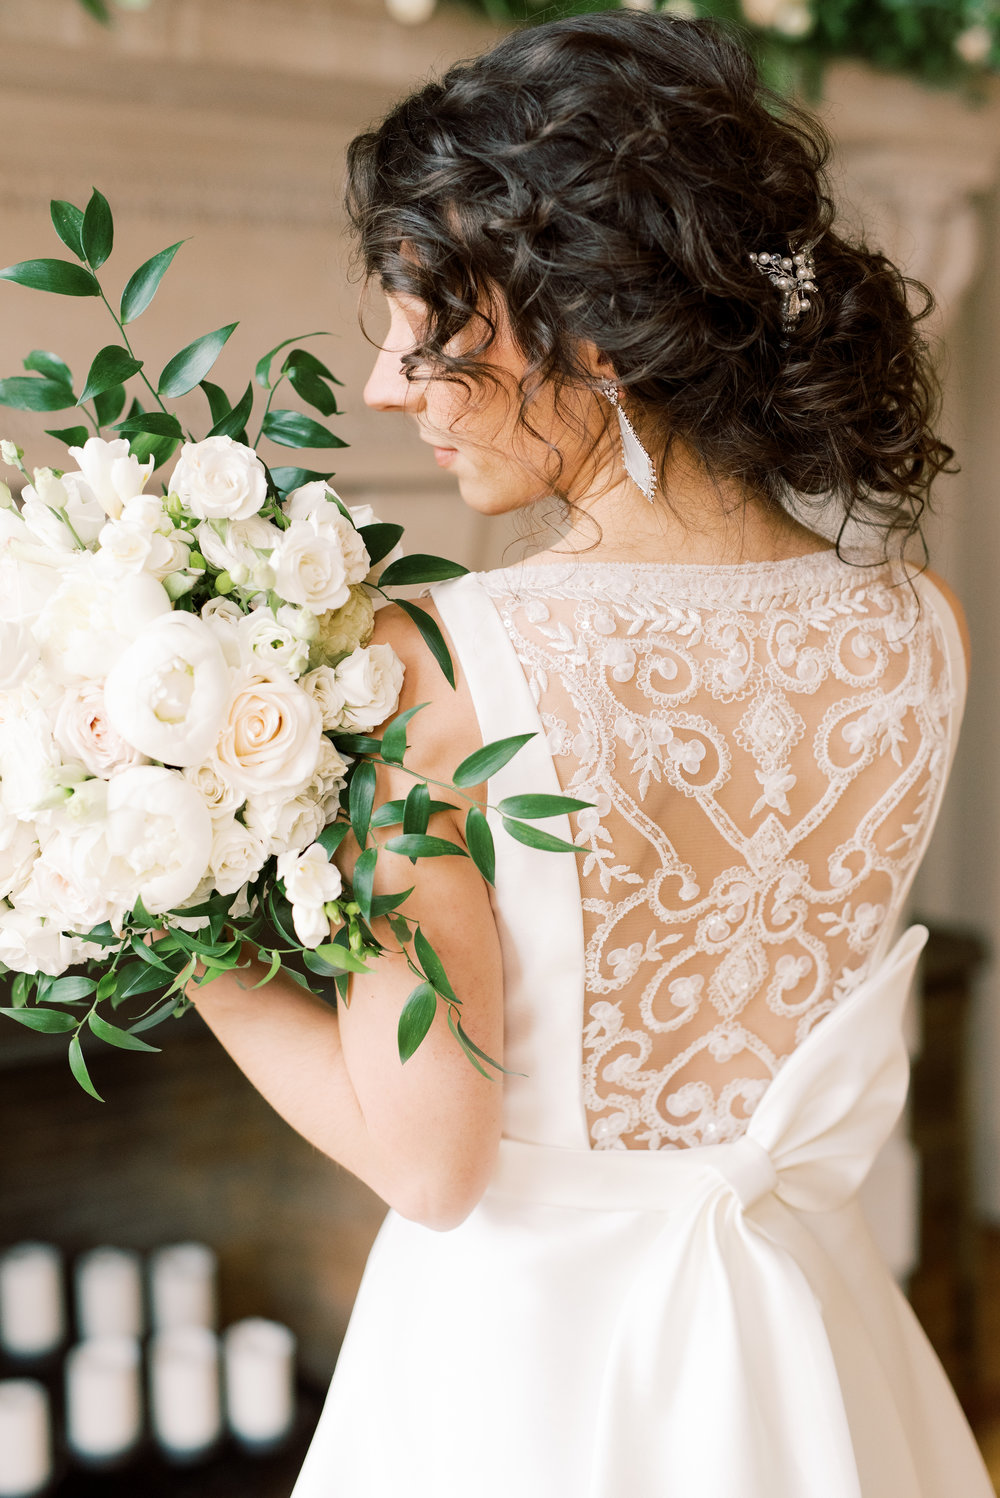 This bride's soft curls and the trailing greens of her bouquet add a romantic touch to this romantic and classic wedding day for their french inspired green and white Cairnwood Estate wedding